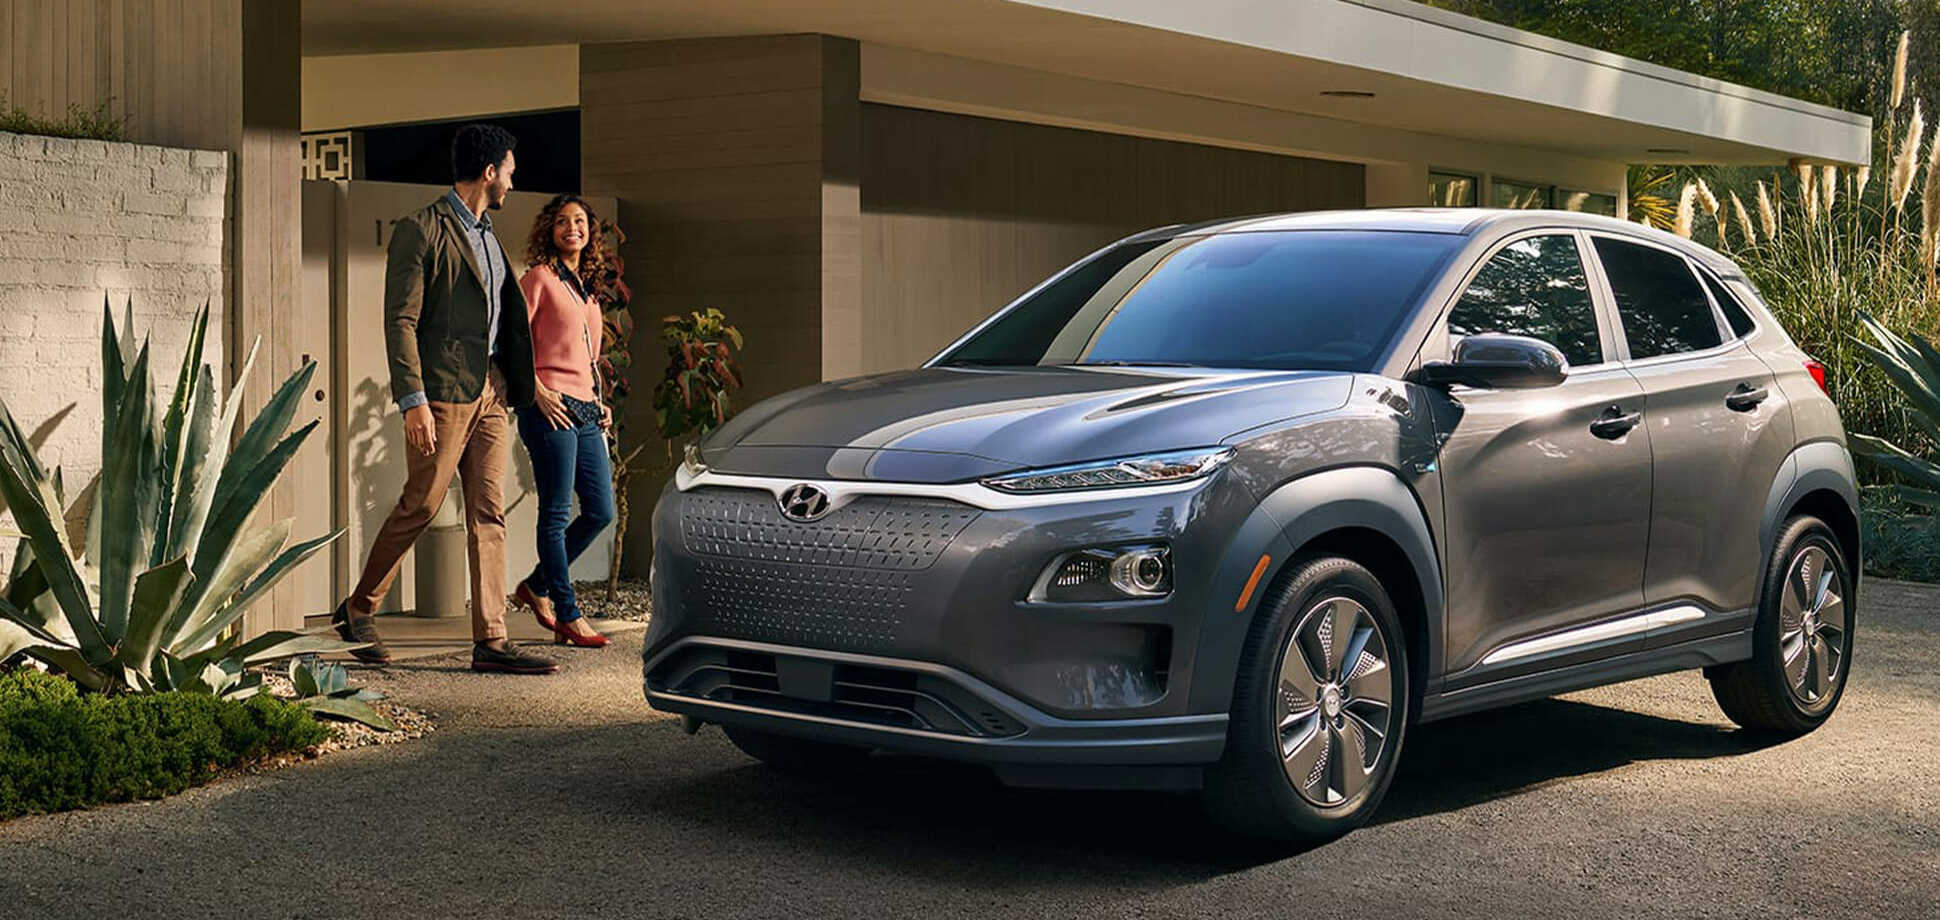 2019 Hyundai Kona EV parked in front of house